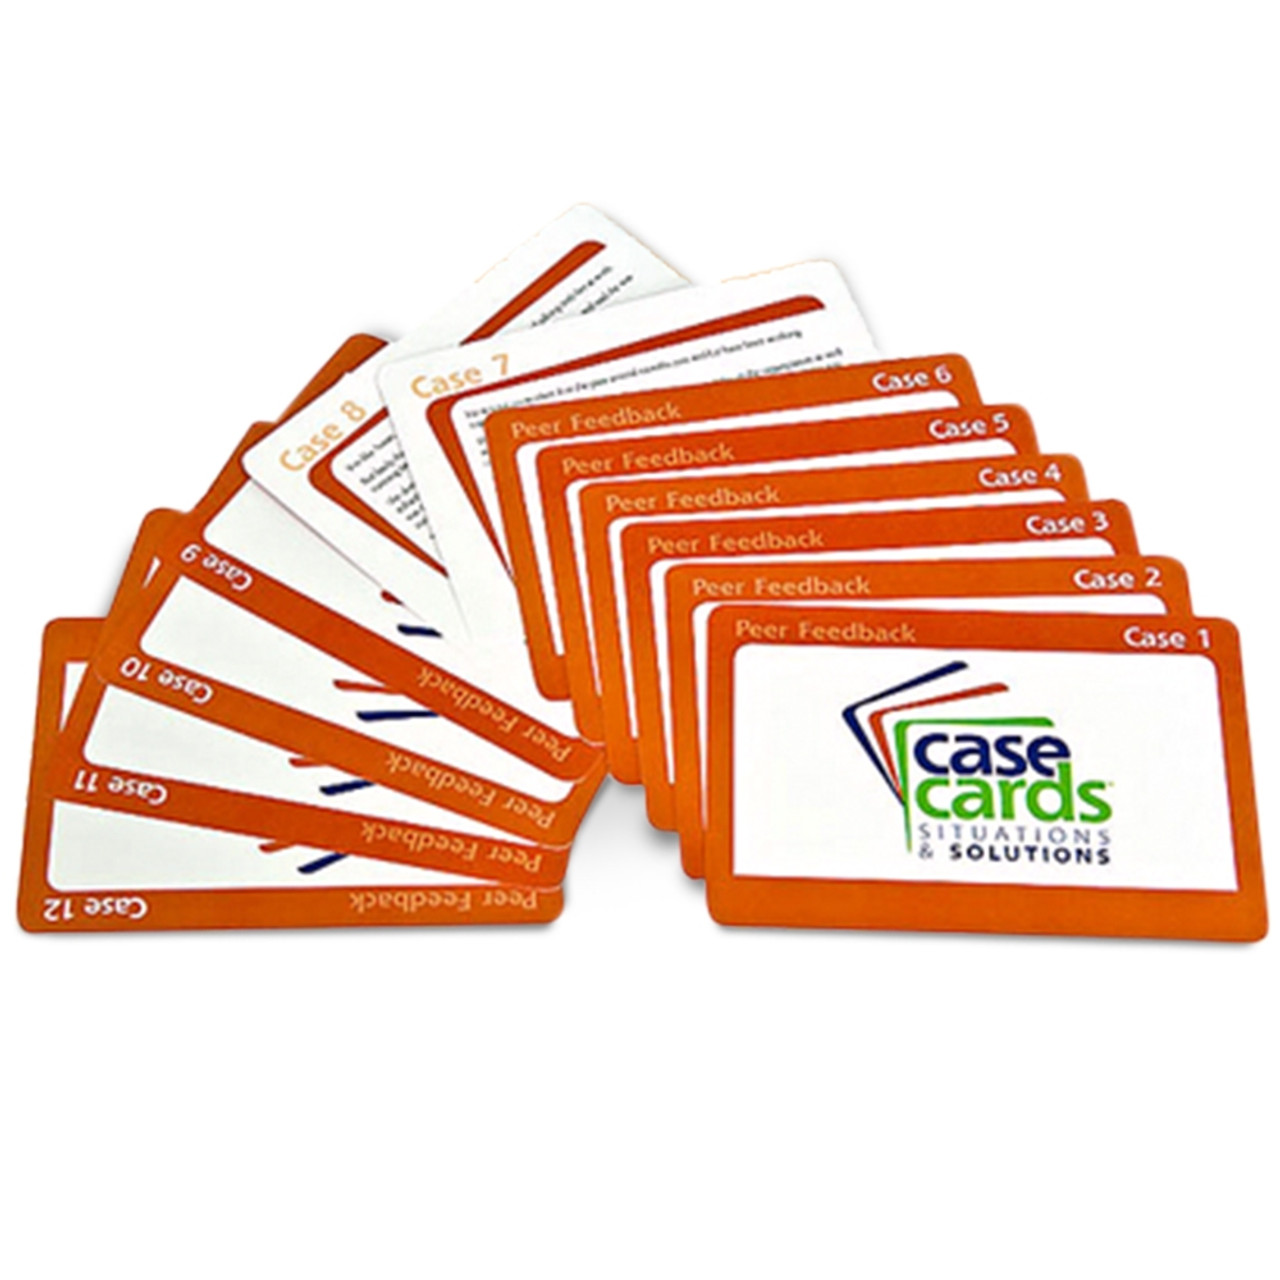 CaseCards - FEEDBACK Situations & Solutions